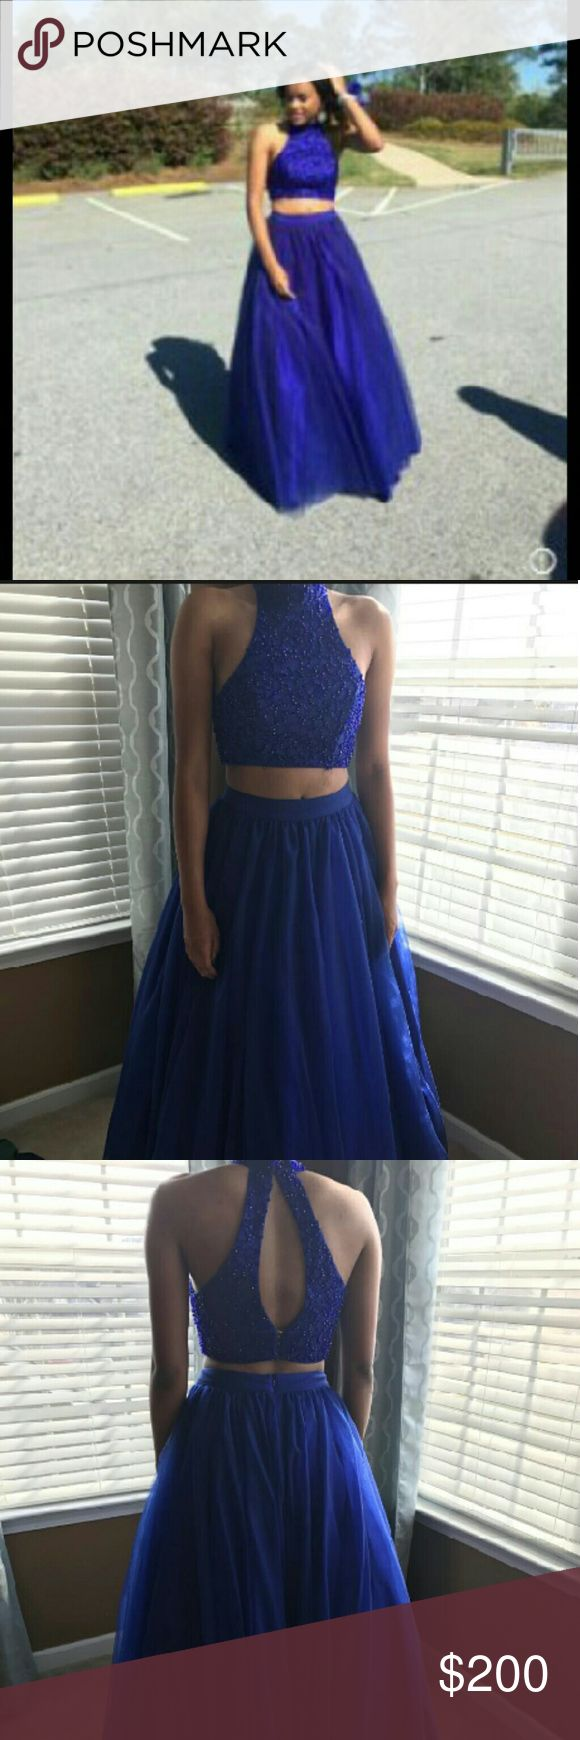 FINAL SALE!! PROM DRESS Beautiful Royal Blue Prom Dress,Beaded Top only Worn Once This Is A Two Piece Dresses Prom